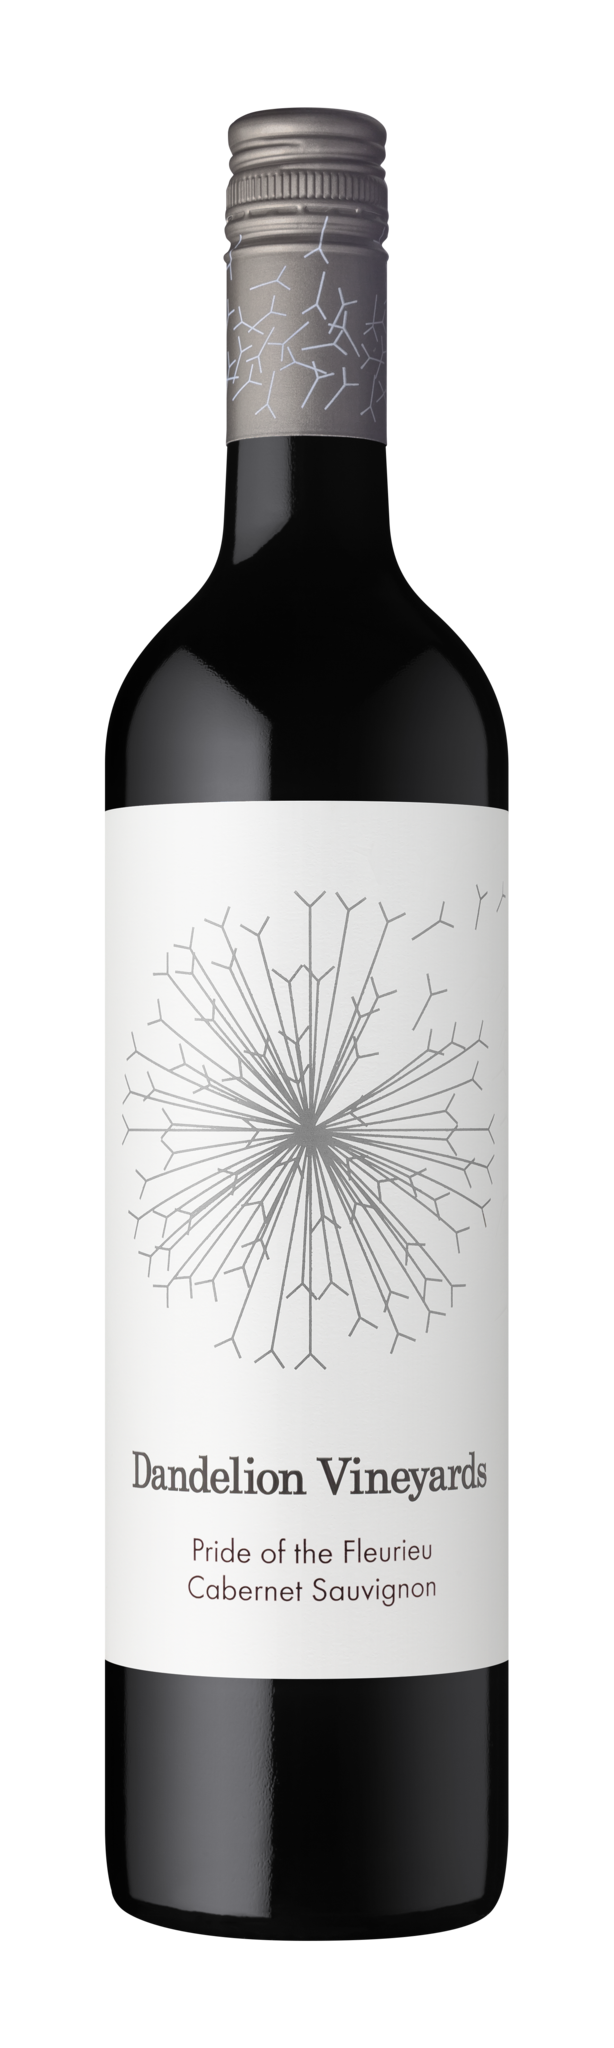 Pride of the Fleurieu Peninsula Cabernet Sauvignon 2016